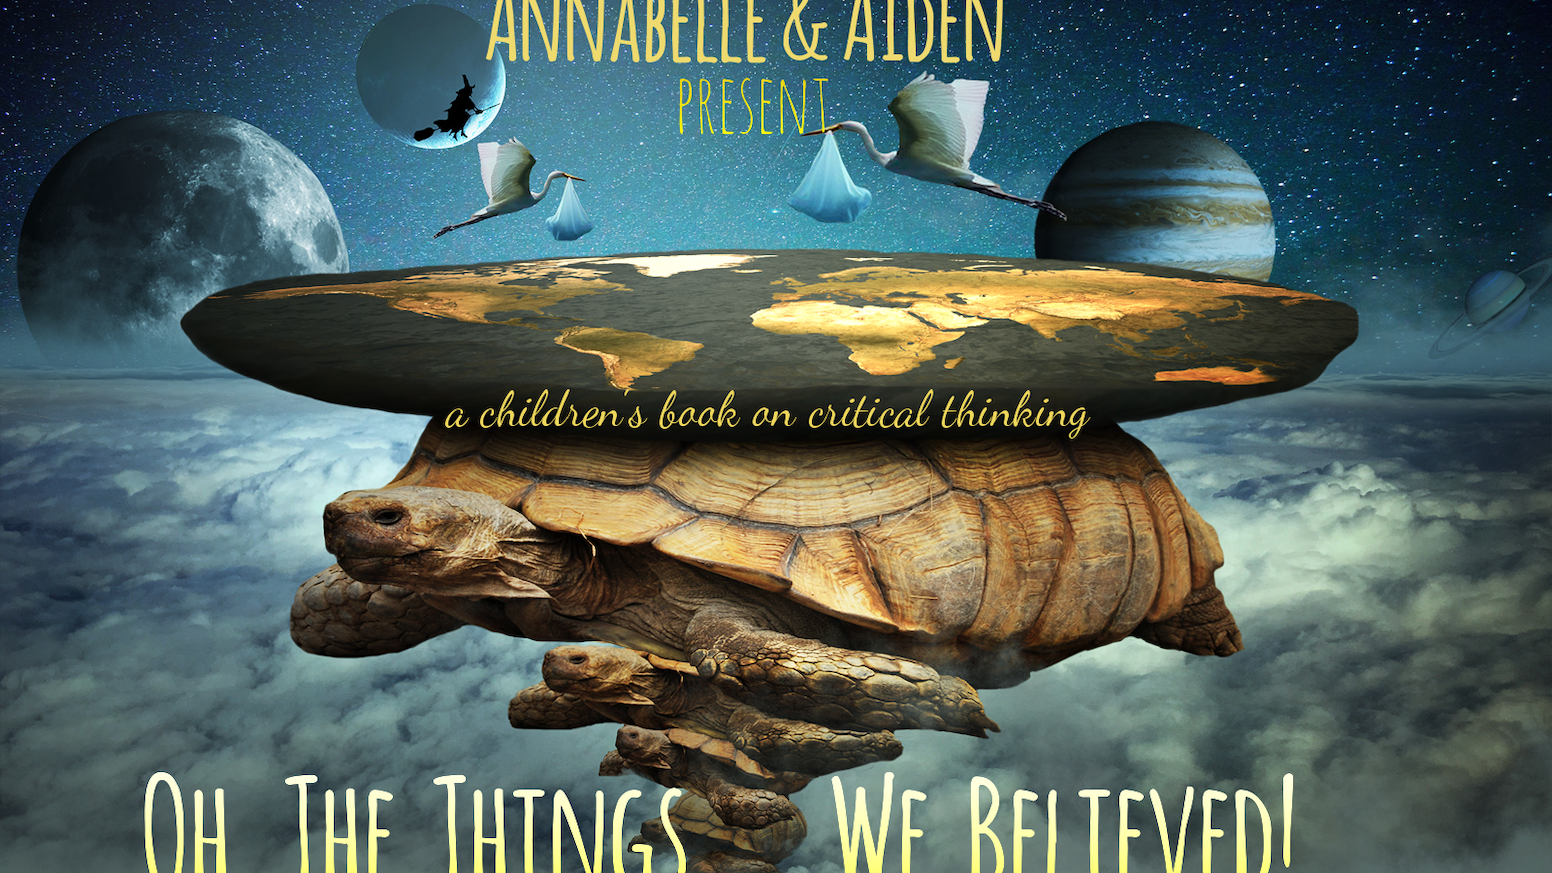 This children's book will foster critical thinking skills through an amazing journey of myths and discoveries, and fiction and fact.